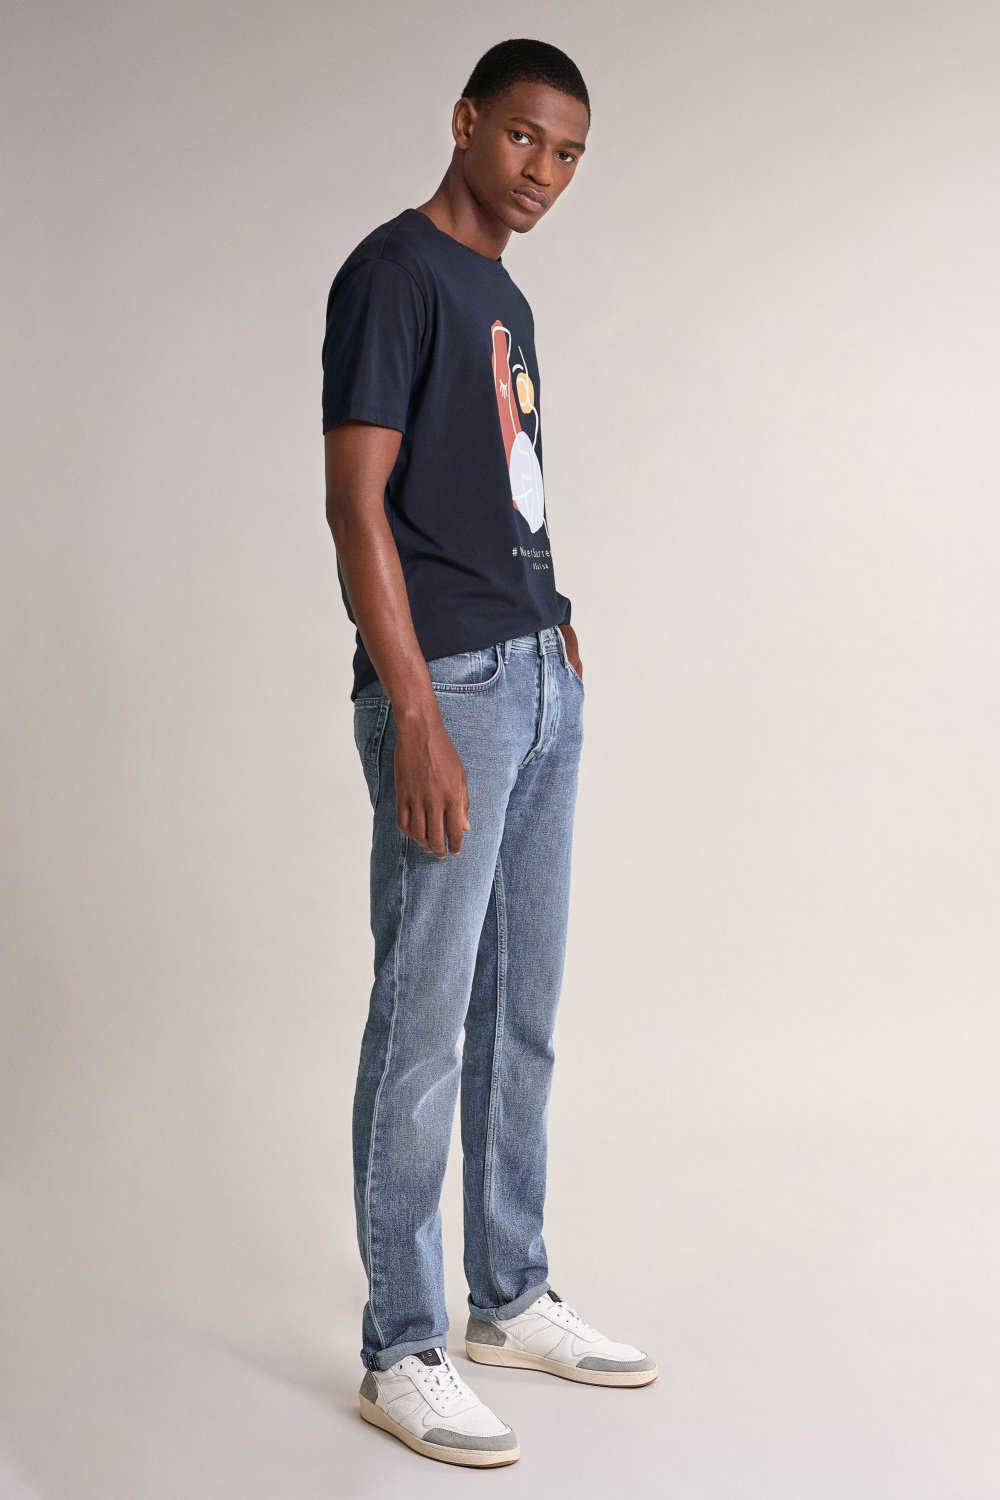 Lima tapered ready to go jeans - Salsa